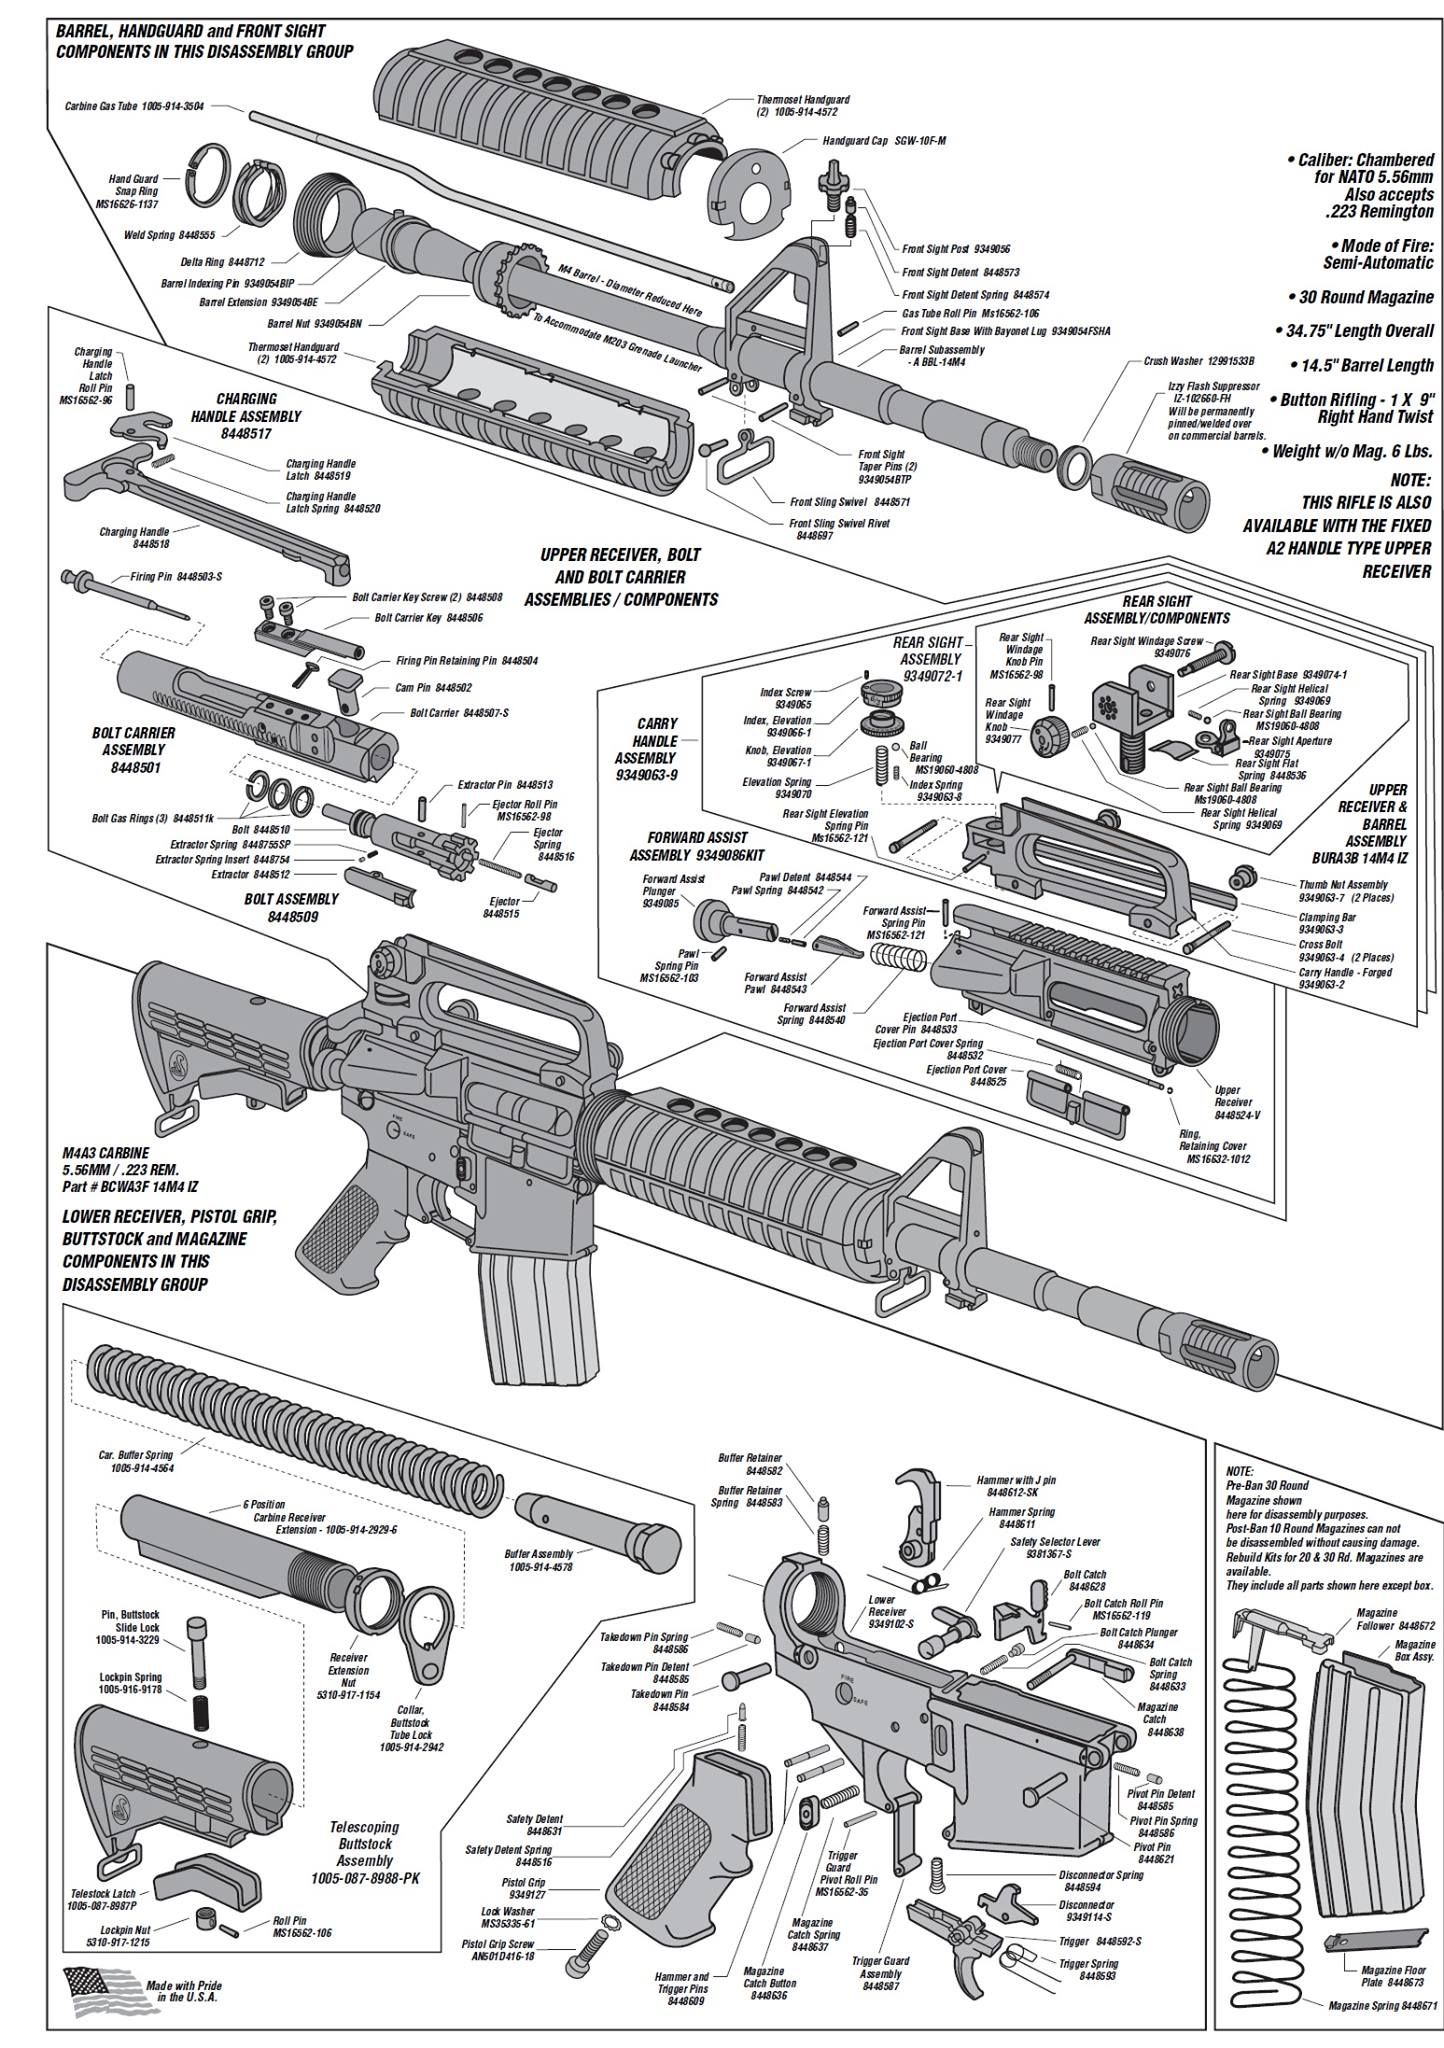 medium resolution of parts breakdown ar 15